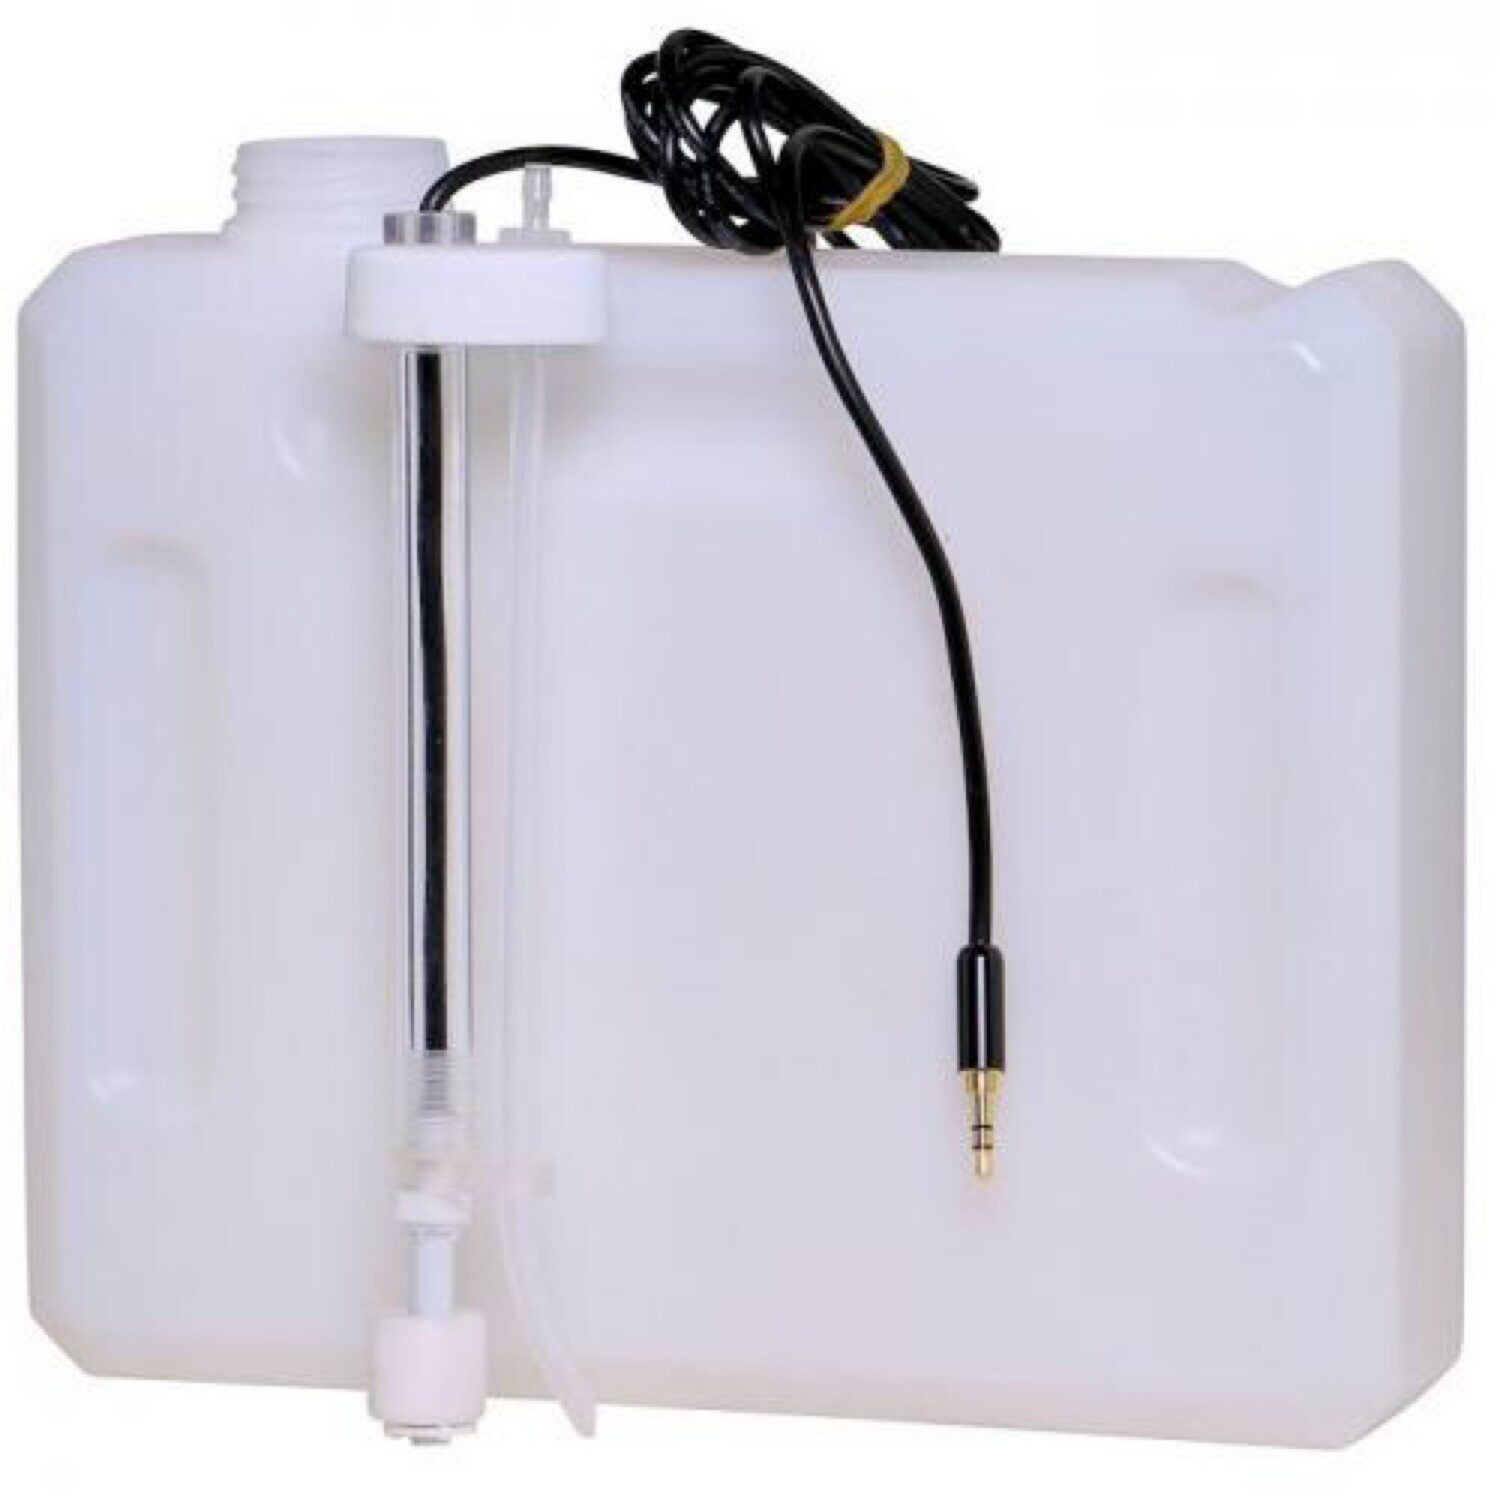 Kamoer Dosing Container 2 Litre W/float Switch